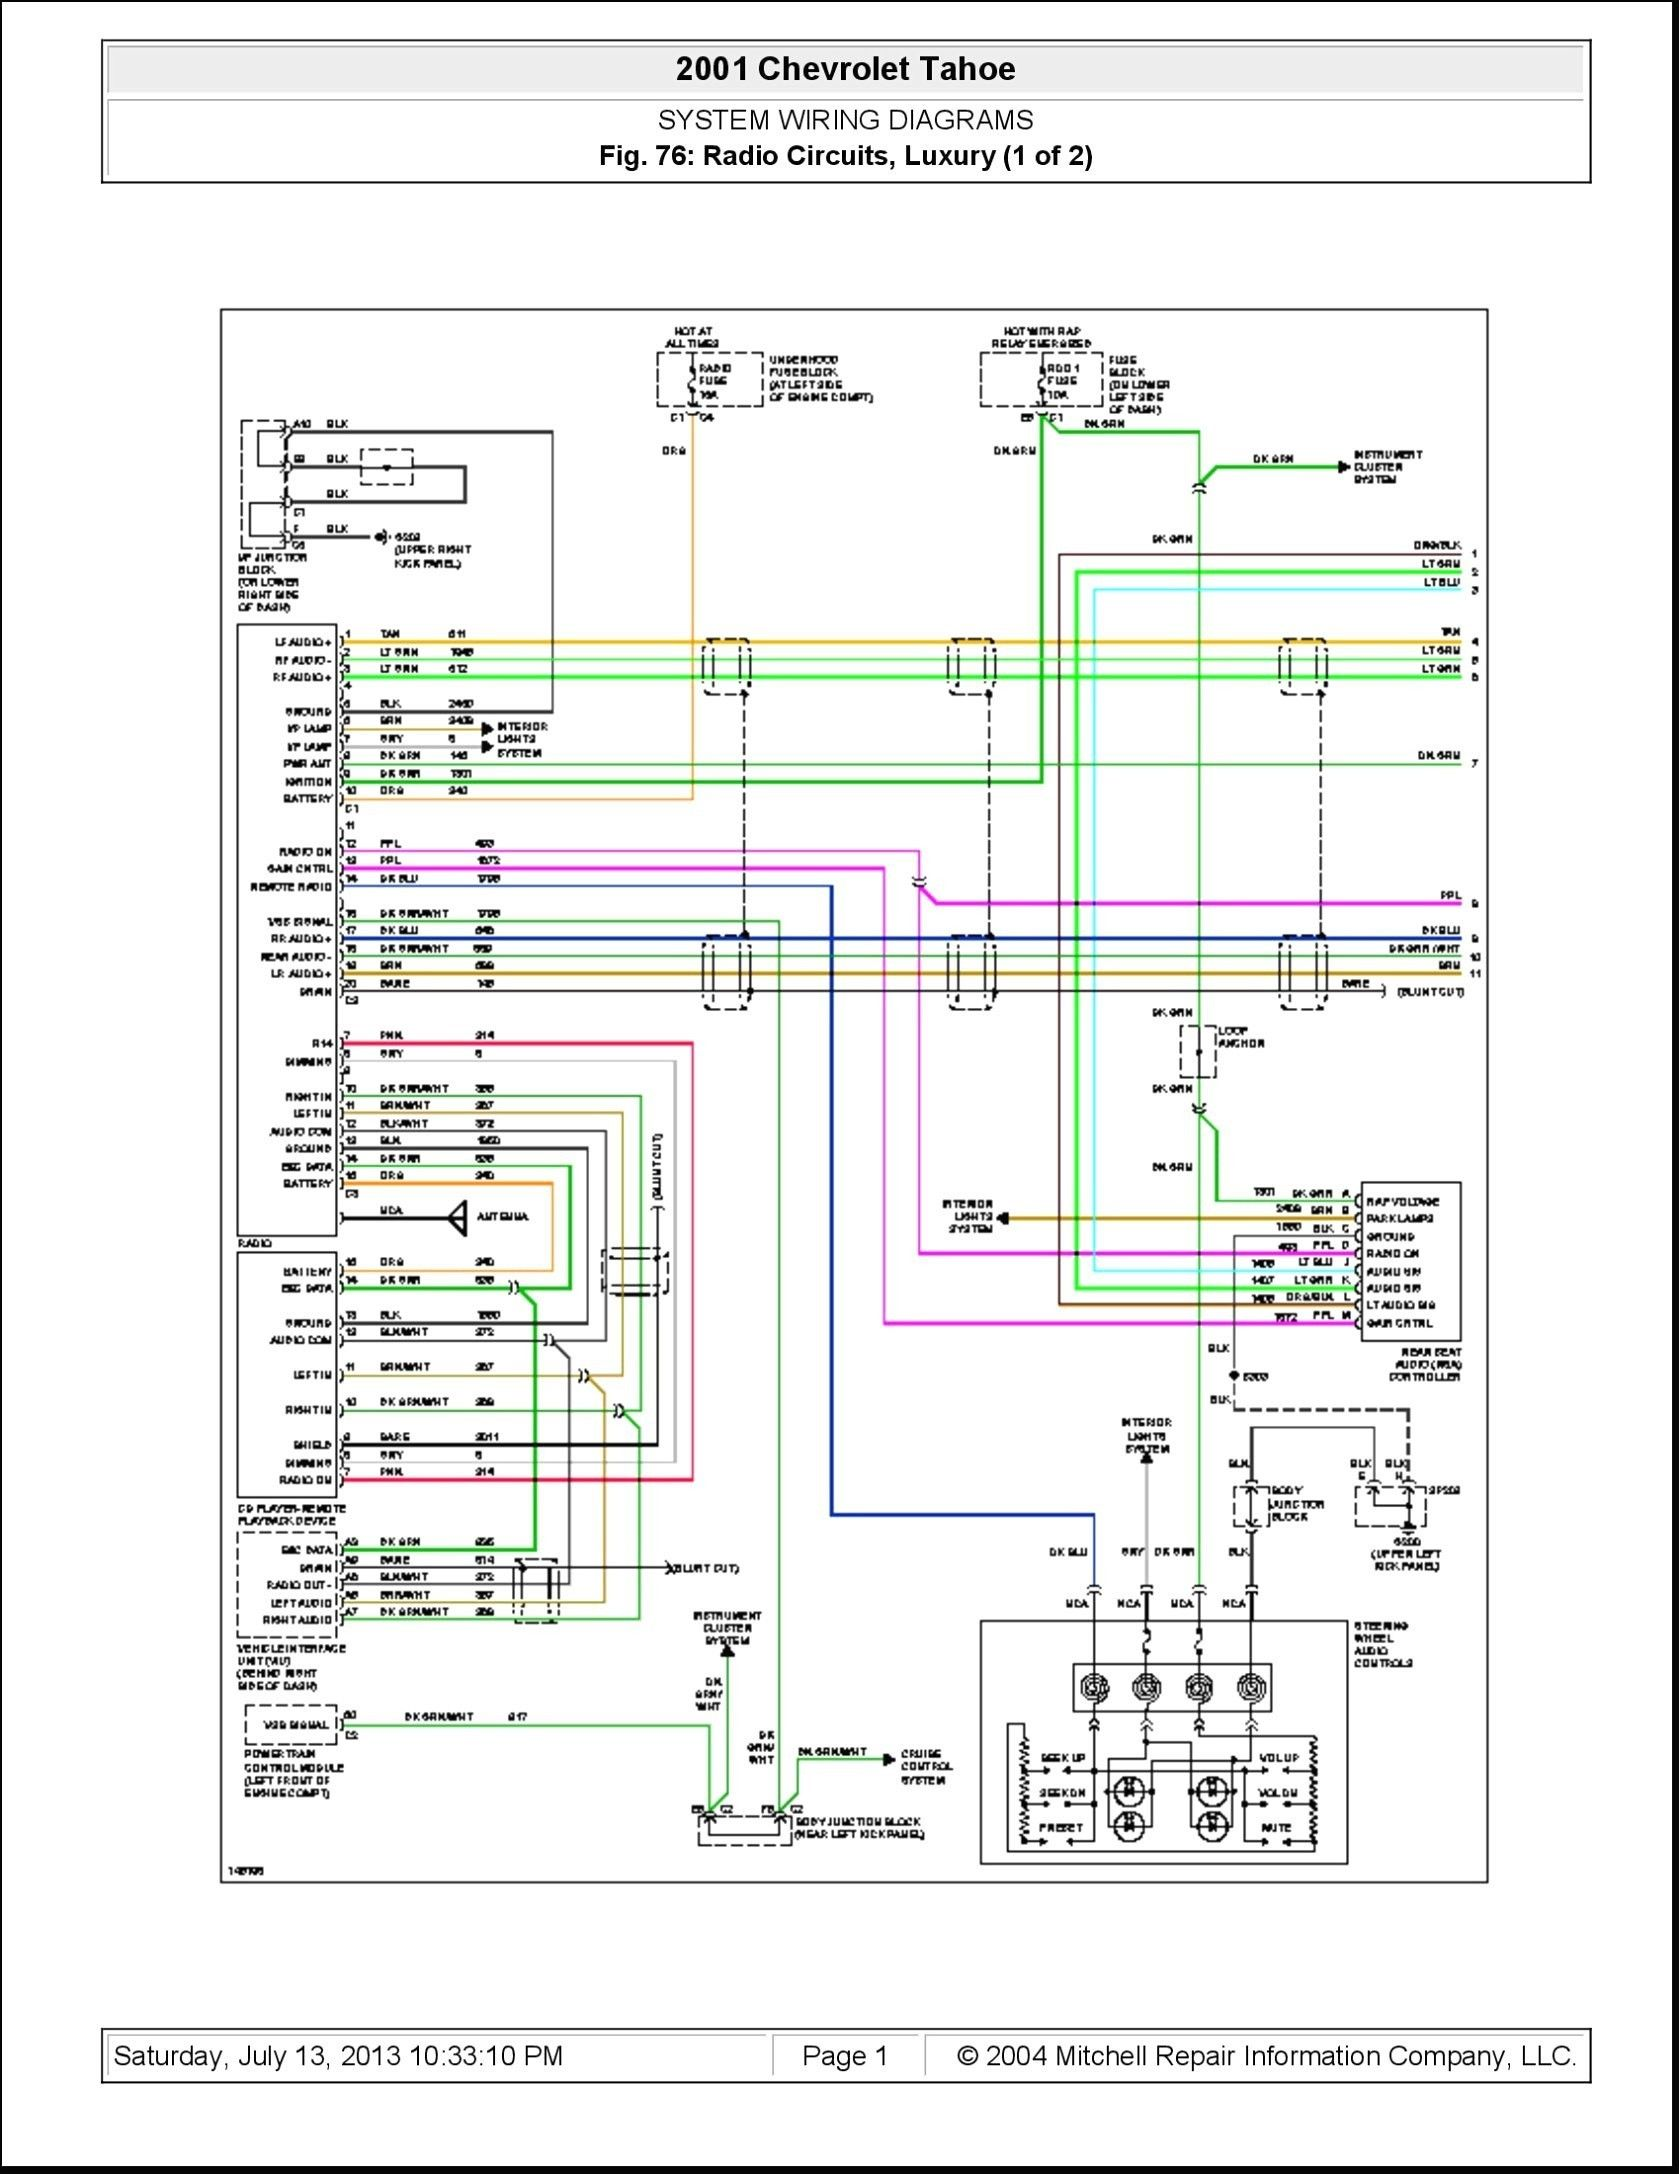 2004 Chevy Trailblazer Radio Wiring Diagram Elegant Di 2020